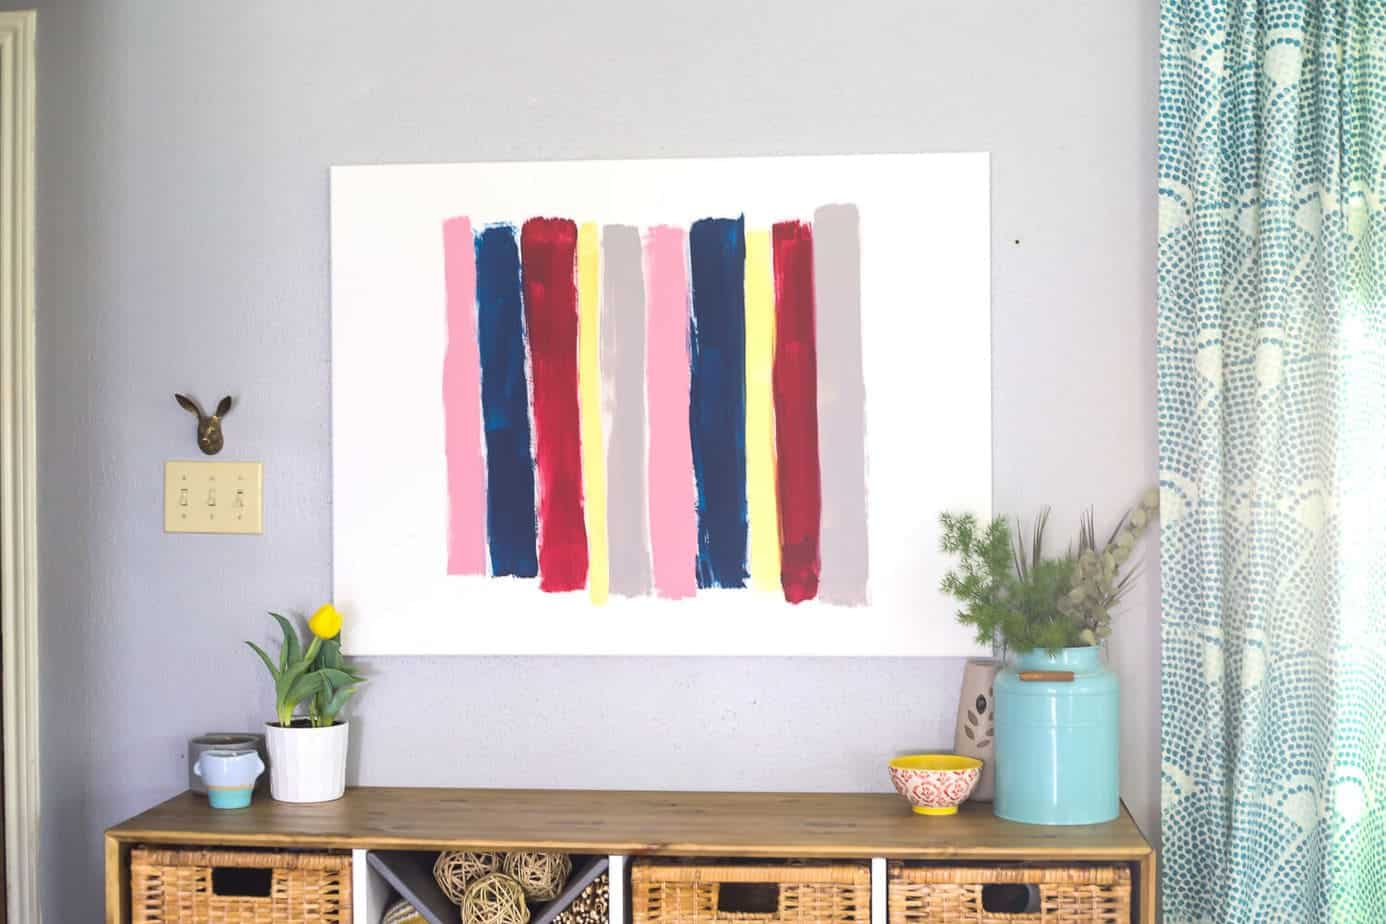 Canvas brush stroke art hanging on a wall above a wooden credenza